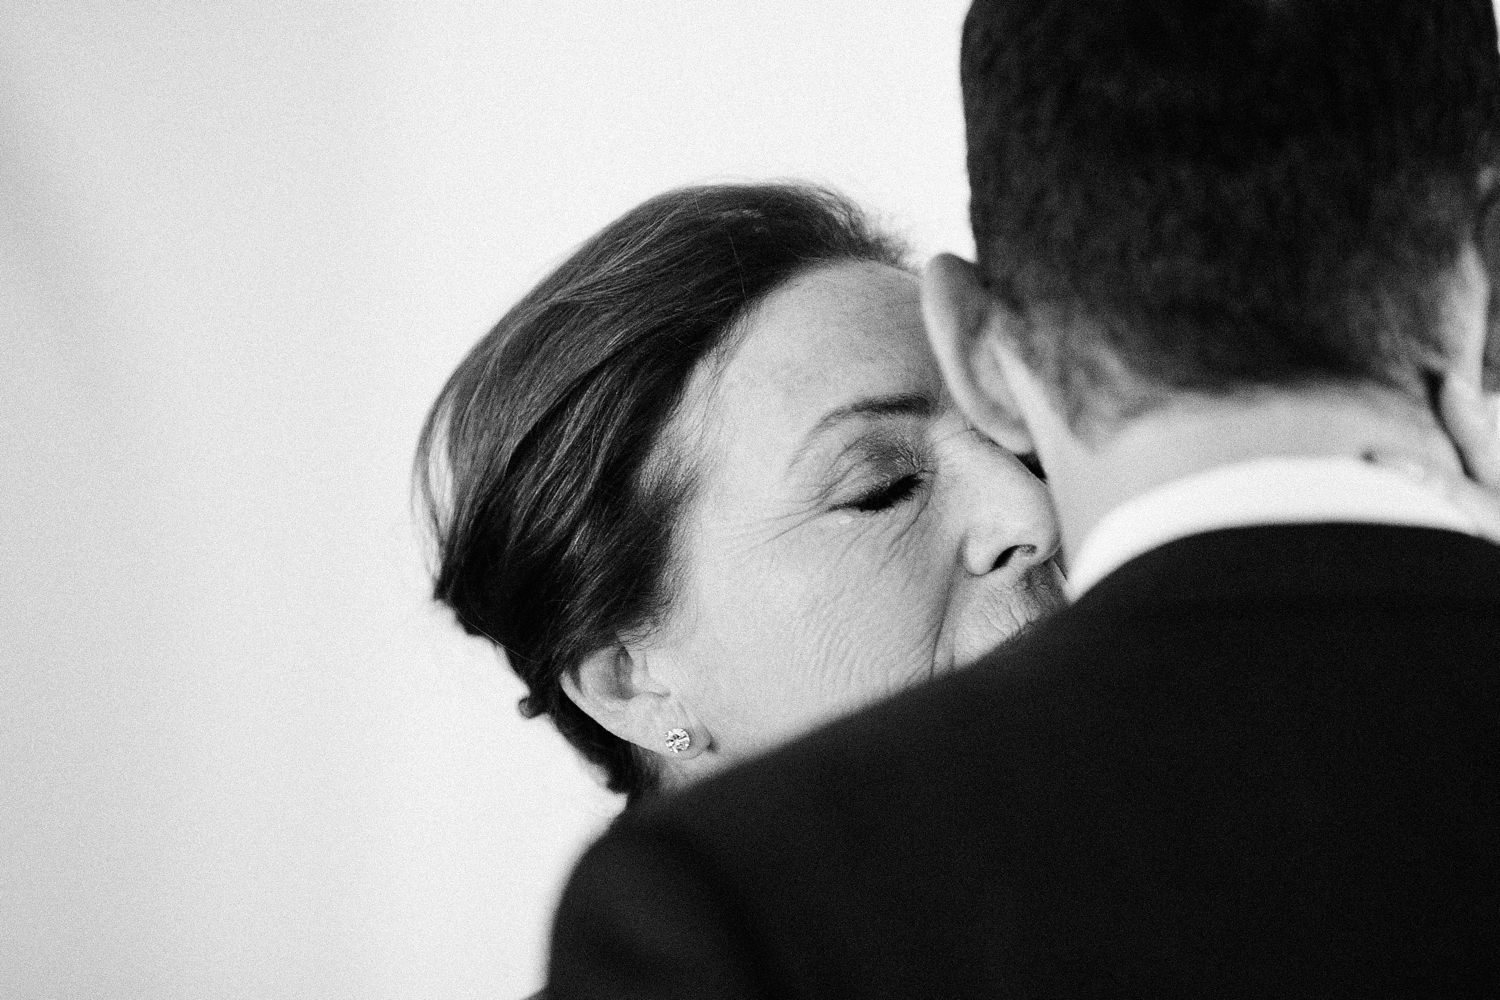 groom-and-mother-hug